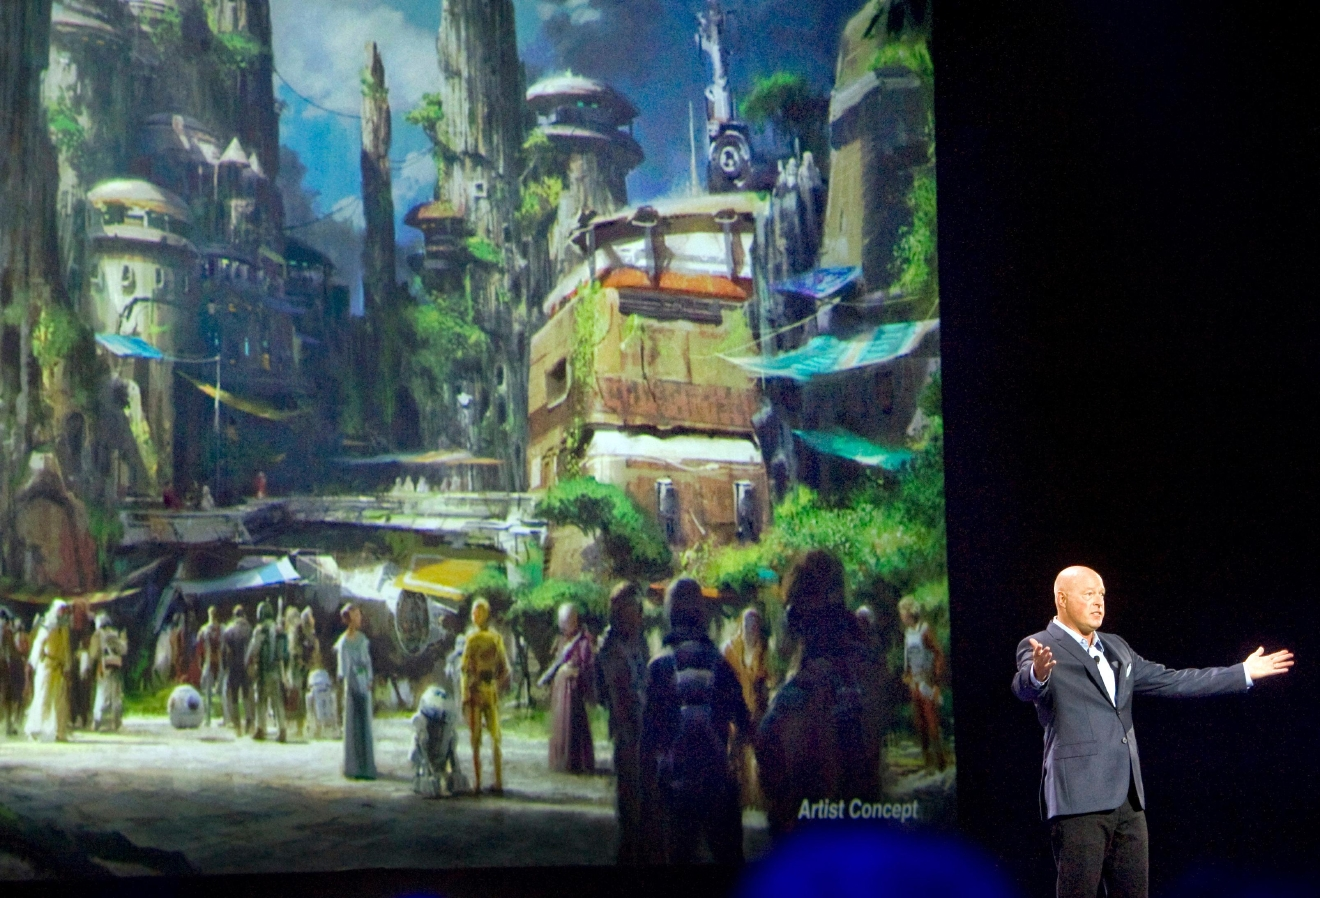 FILE - In this Saturday, Aug. 15, 2015, file photo, Bob Chapek, chairman of Walt Disney Parks and Resorts, speaks in front of concept art of the newly announced Star Wars Land at the D23 Expo in Anaheim, Calif. Disney CEO Bob Iger said Tuesday, Feb. 7, 2017, the company will open its Star Wars-themed lands at California's Disneyland and Florida's Walt Disney World in 2019. (Mindy Schauer/The Orange County Register via AP, File)